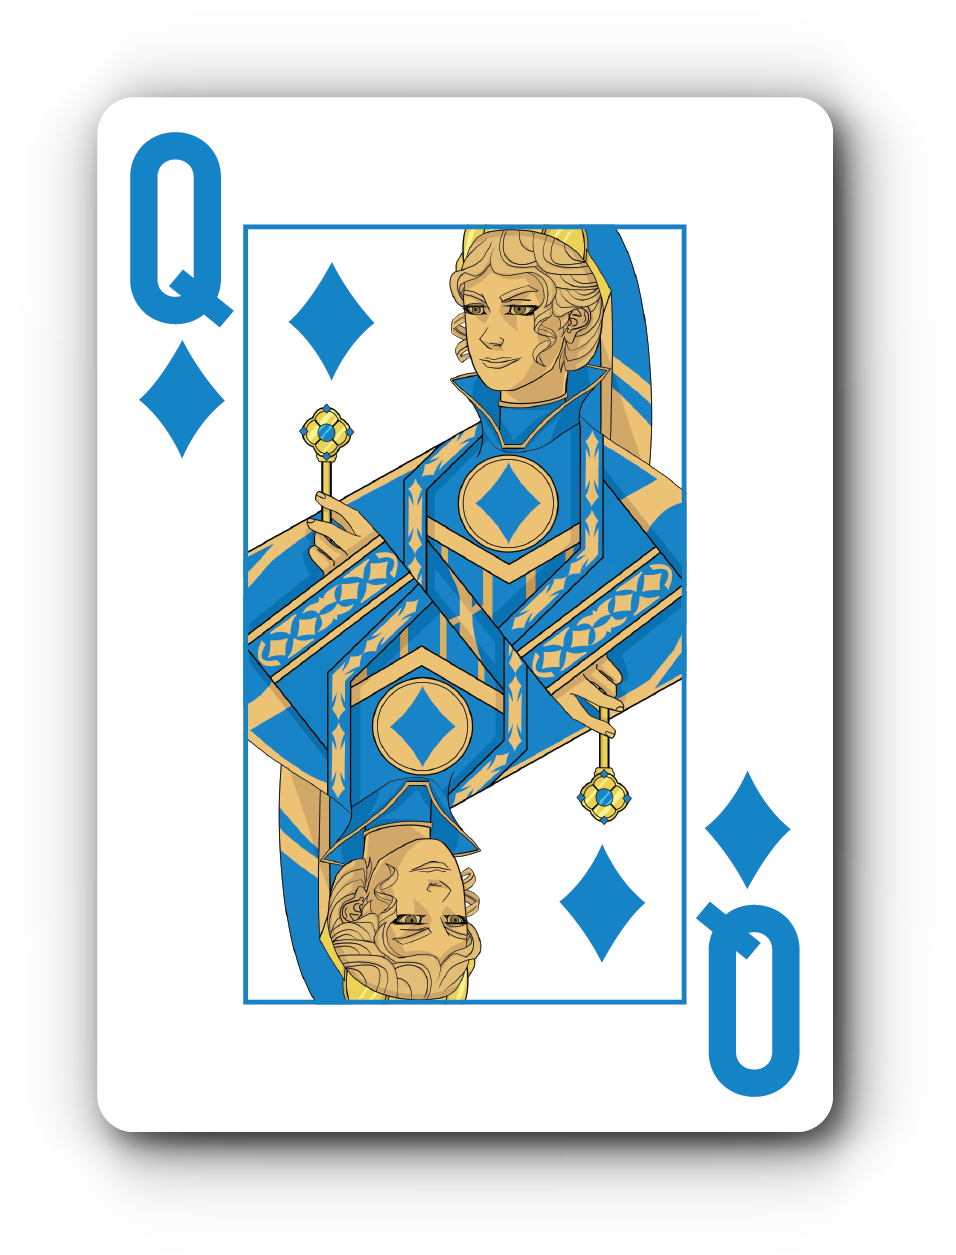 4 queen playing cards png. Run it up launches